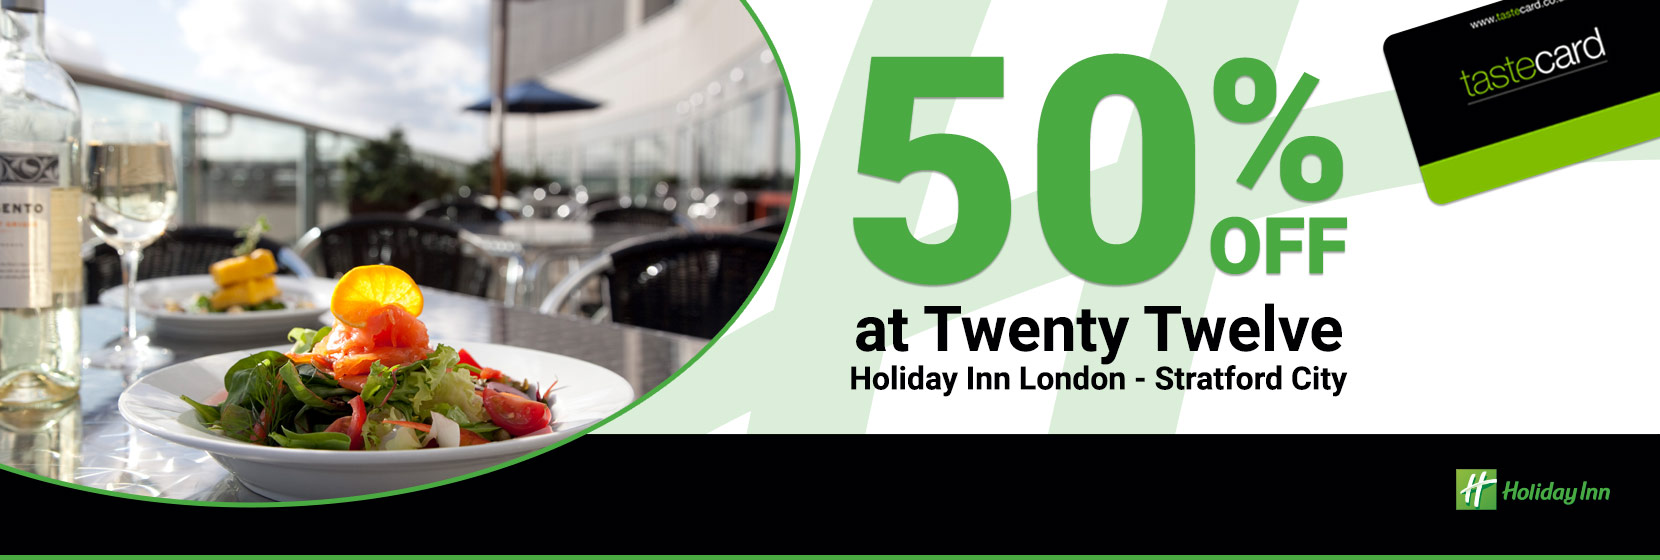 50% off with Tastecard at Holiday Inn Stratford Offers